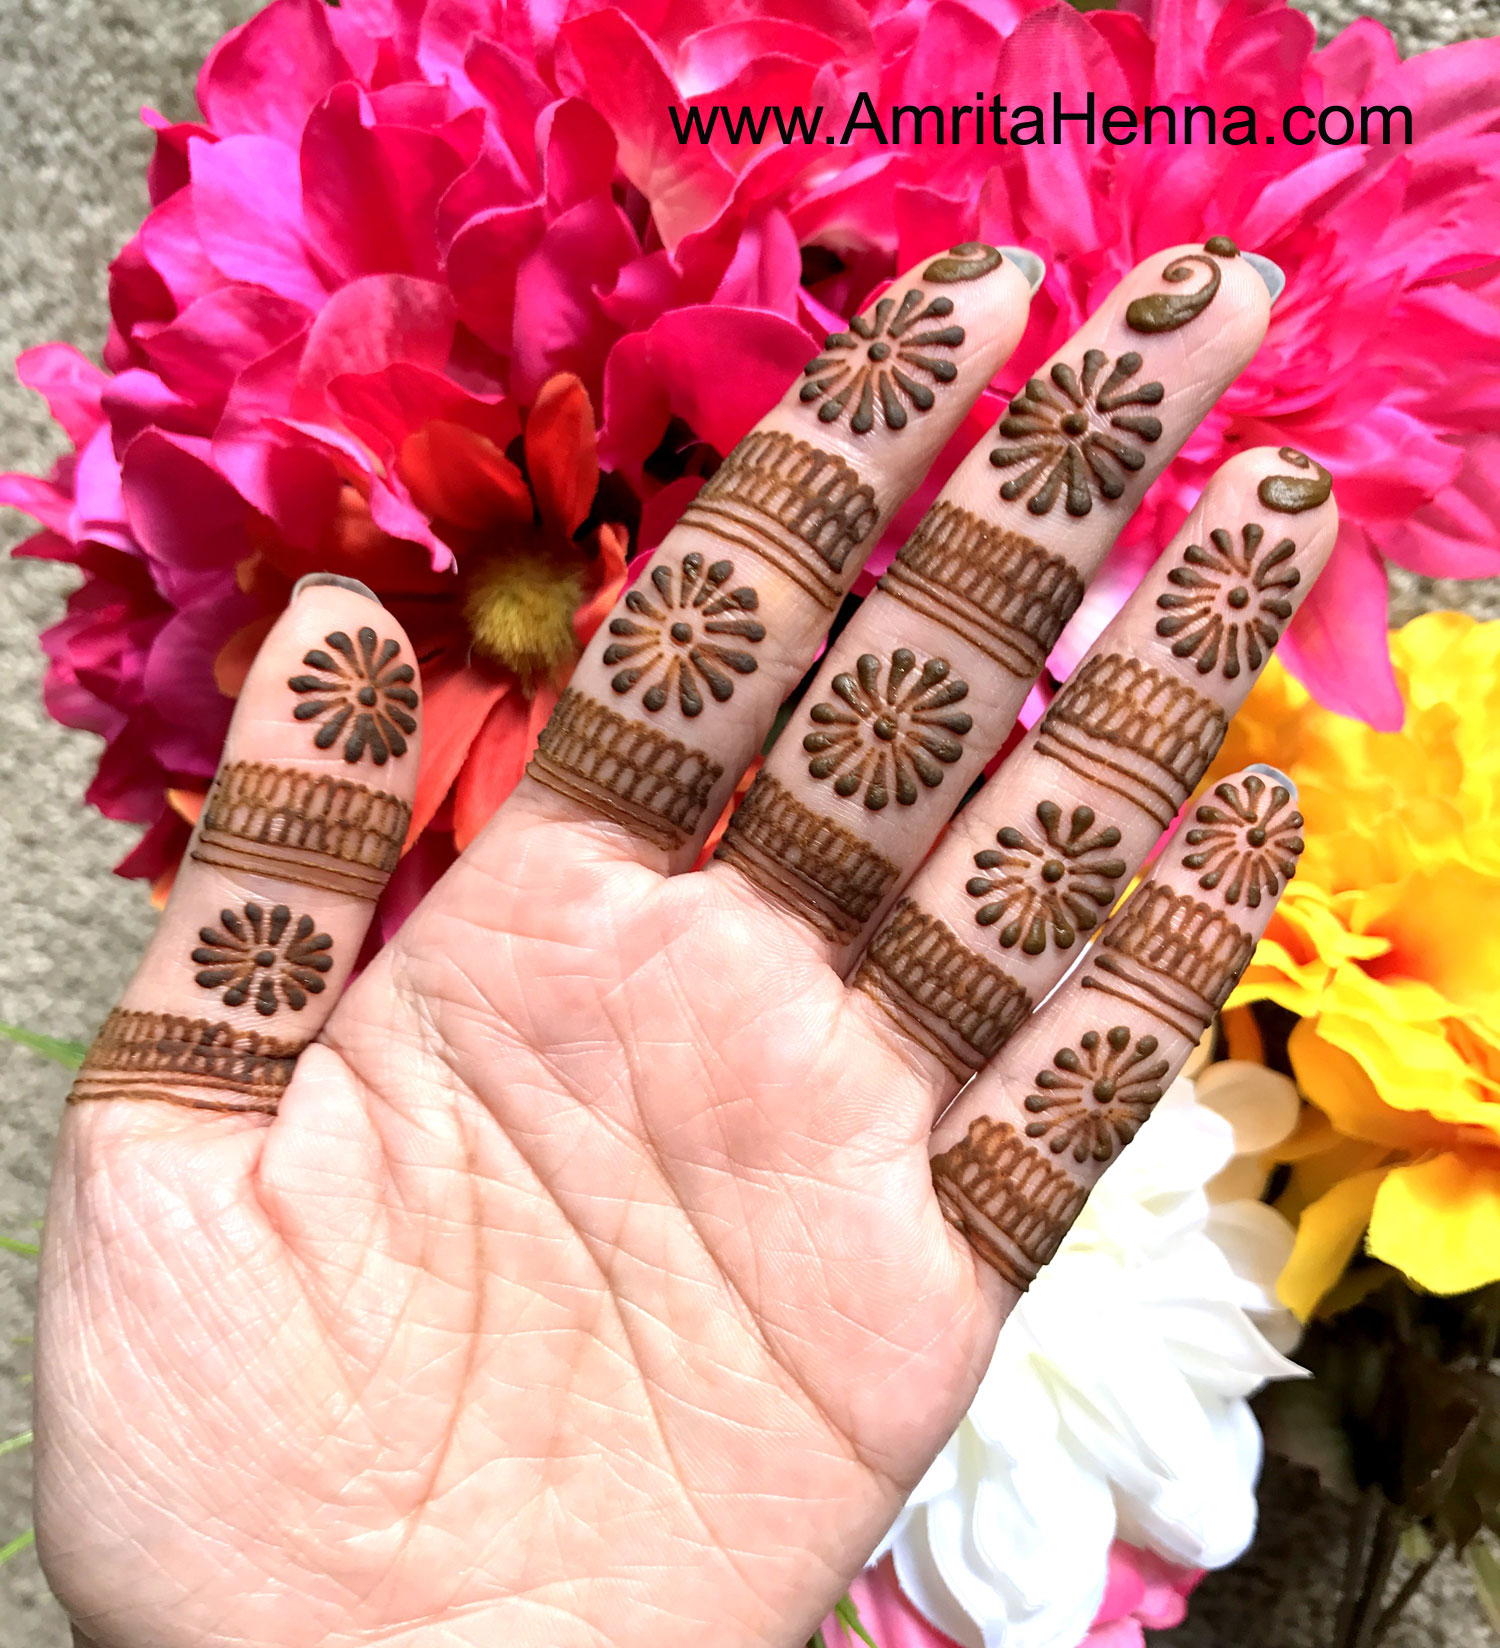 Top 10 Unique Henna Designs - 10 Must Try Most Unique Mehndi Designs for Weddings - Top 10 stunning very Unique Mehendi Designs - Top 10 Special Creative Henna Mehndi Designs - Top 10 unique Mehandi Designs for you